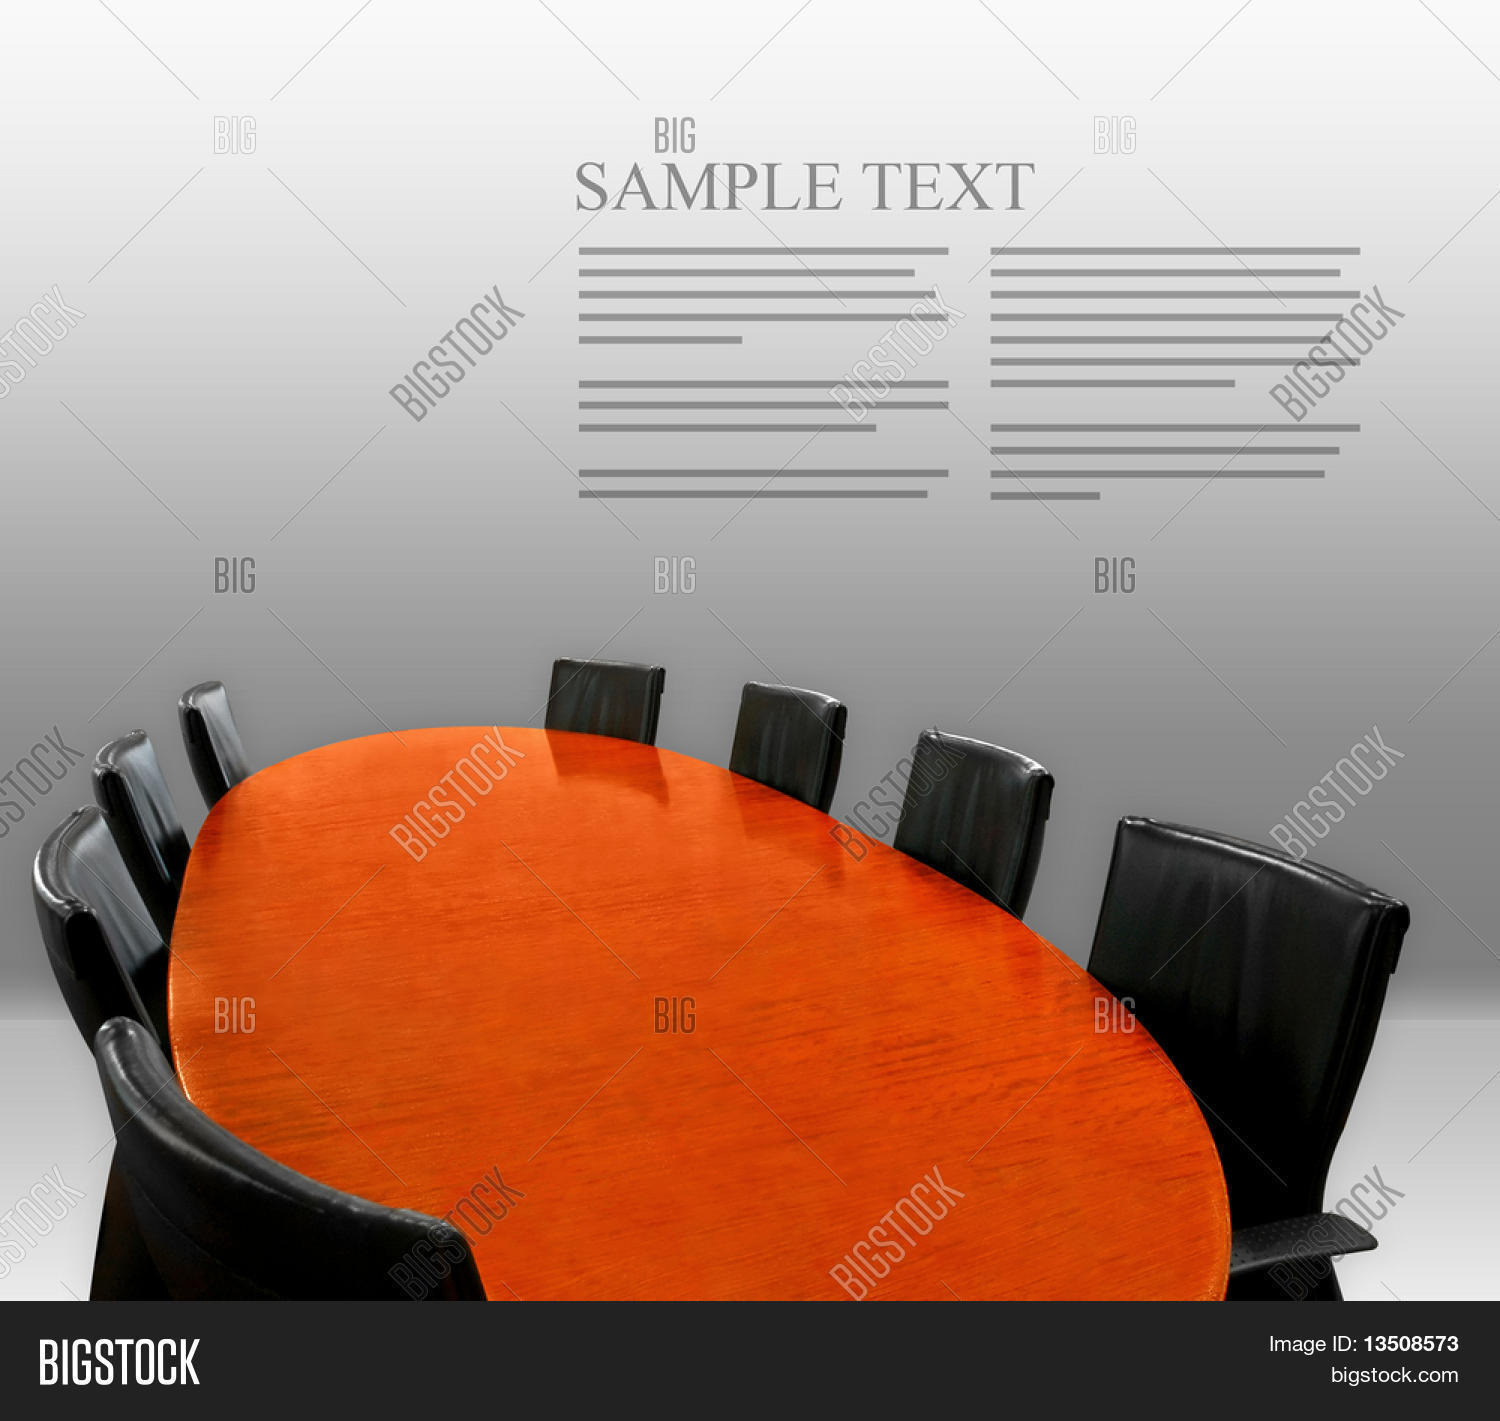 Meeting Table Layout Image Photo Free Trial Bigstock - Conference table layout